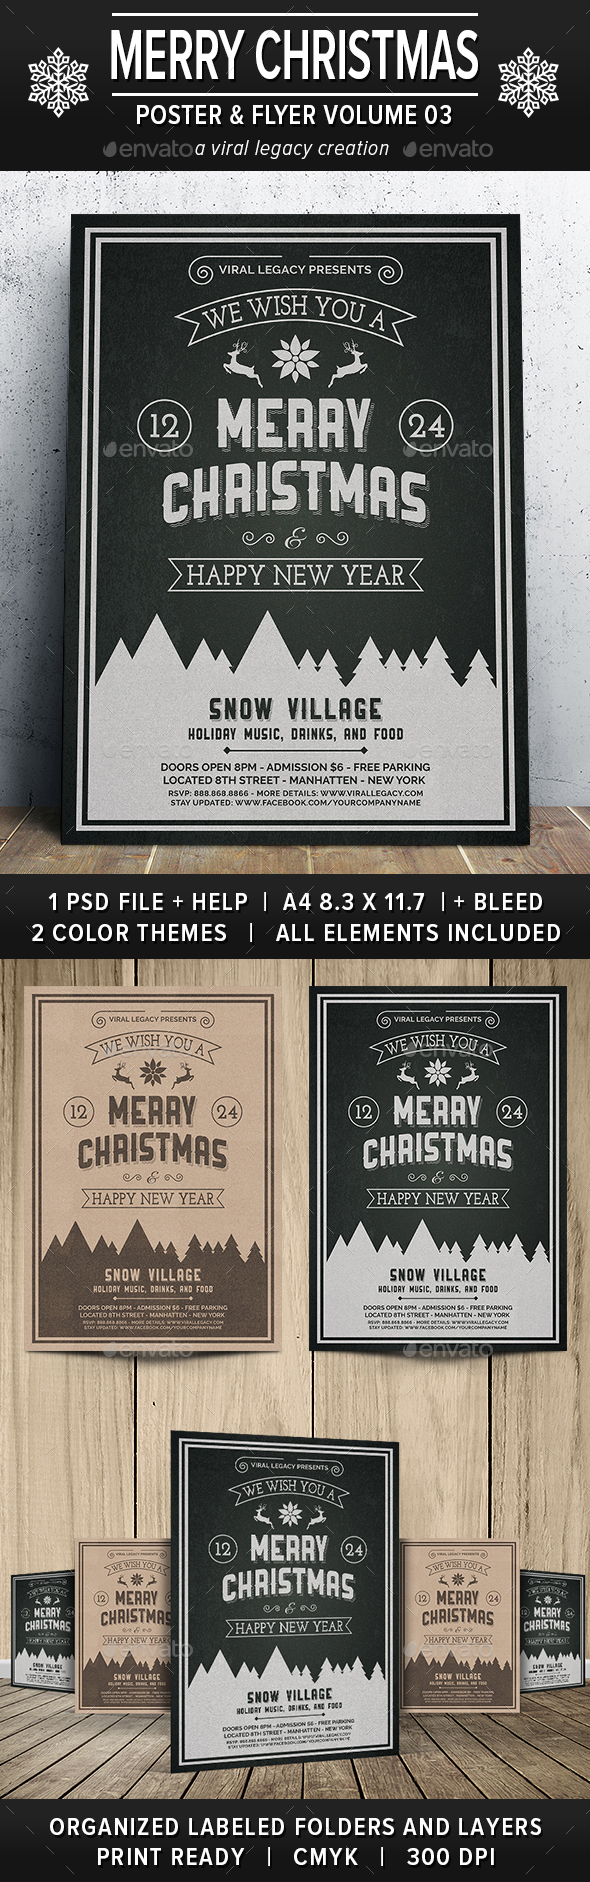 Merry Christmas Poster / Flyer V03 - Events Flyers